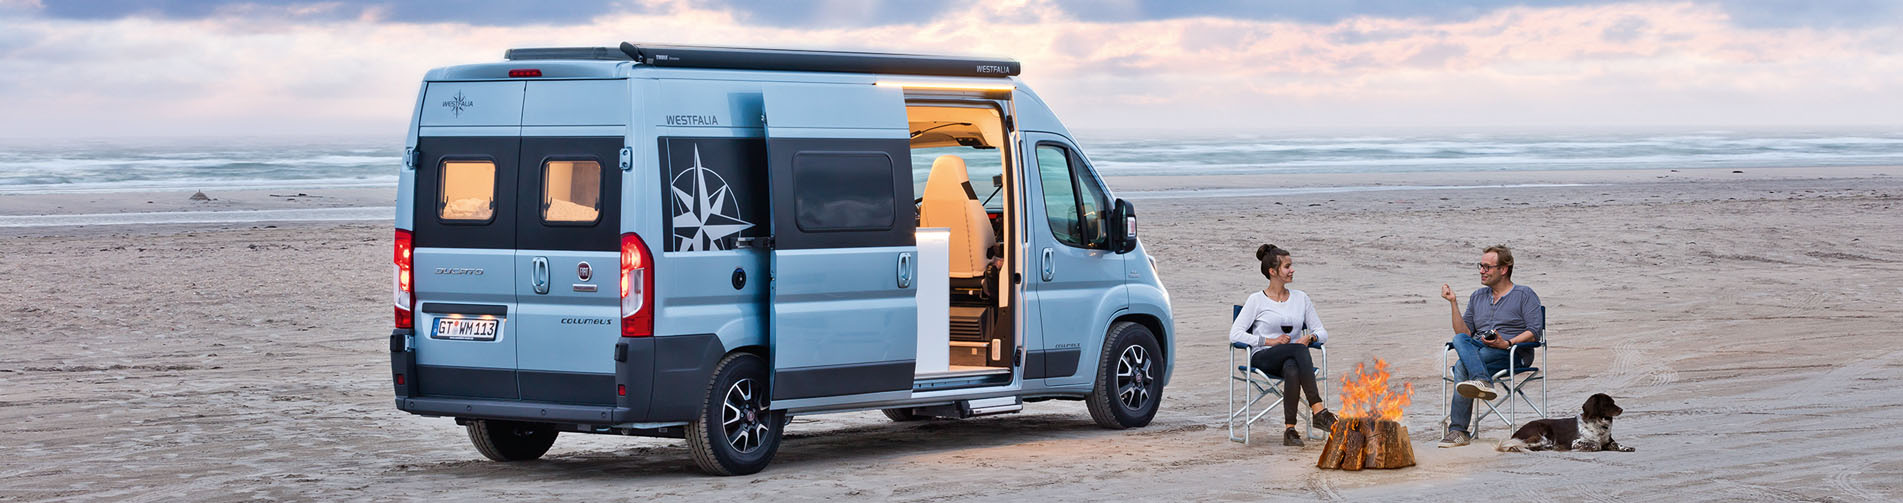 westfalia-couple-on-beach-slider